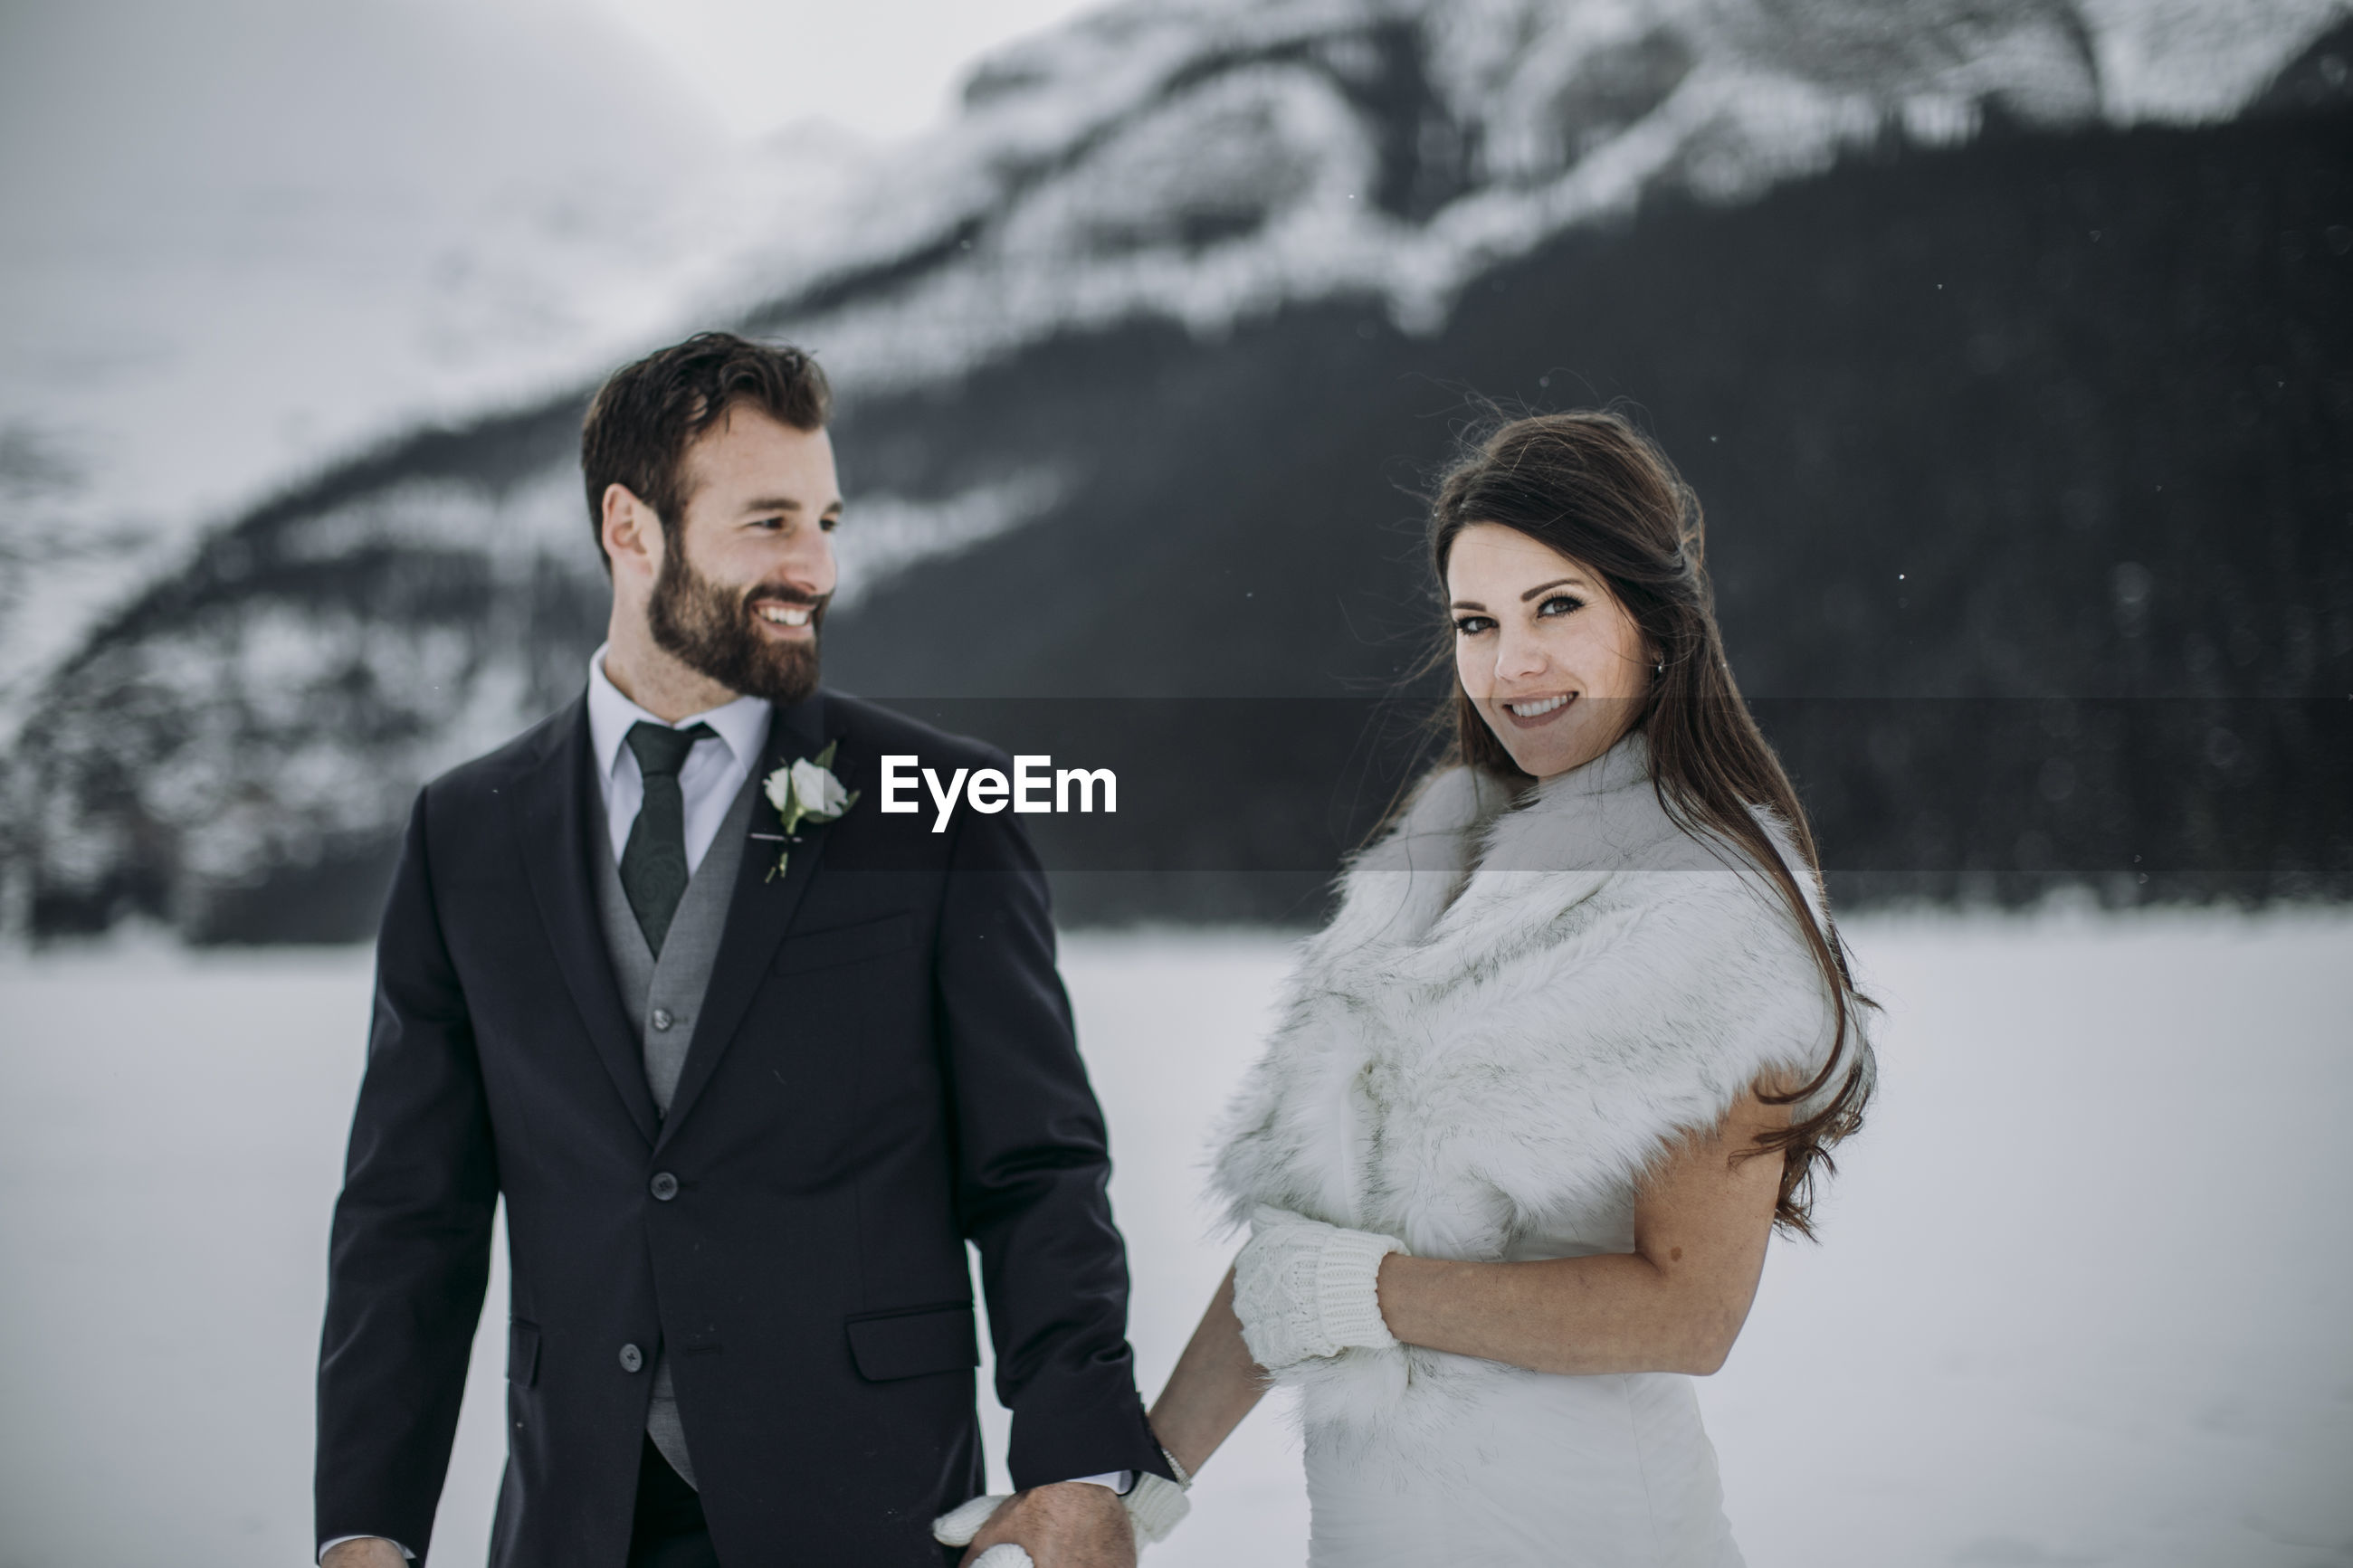 YOUNG COUPLE STANDING ON SNOW